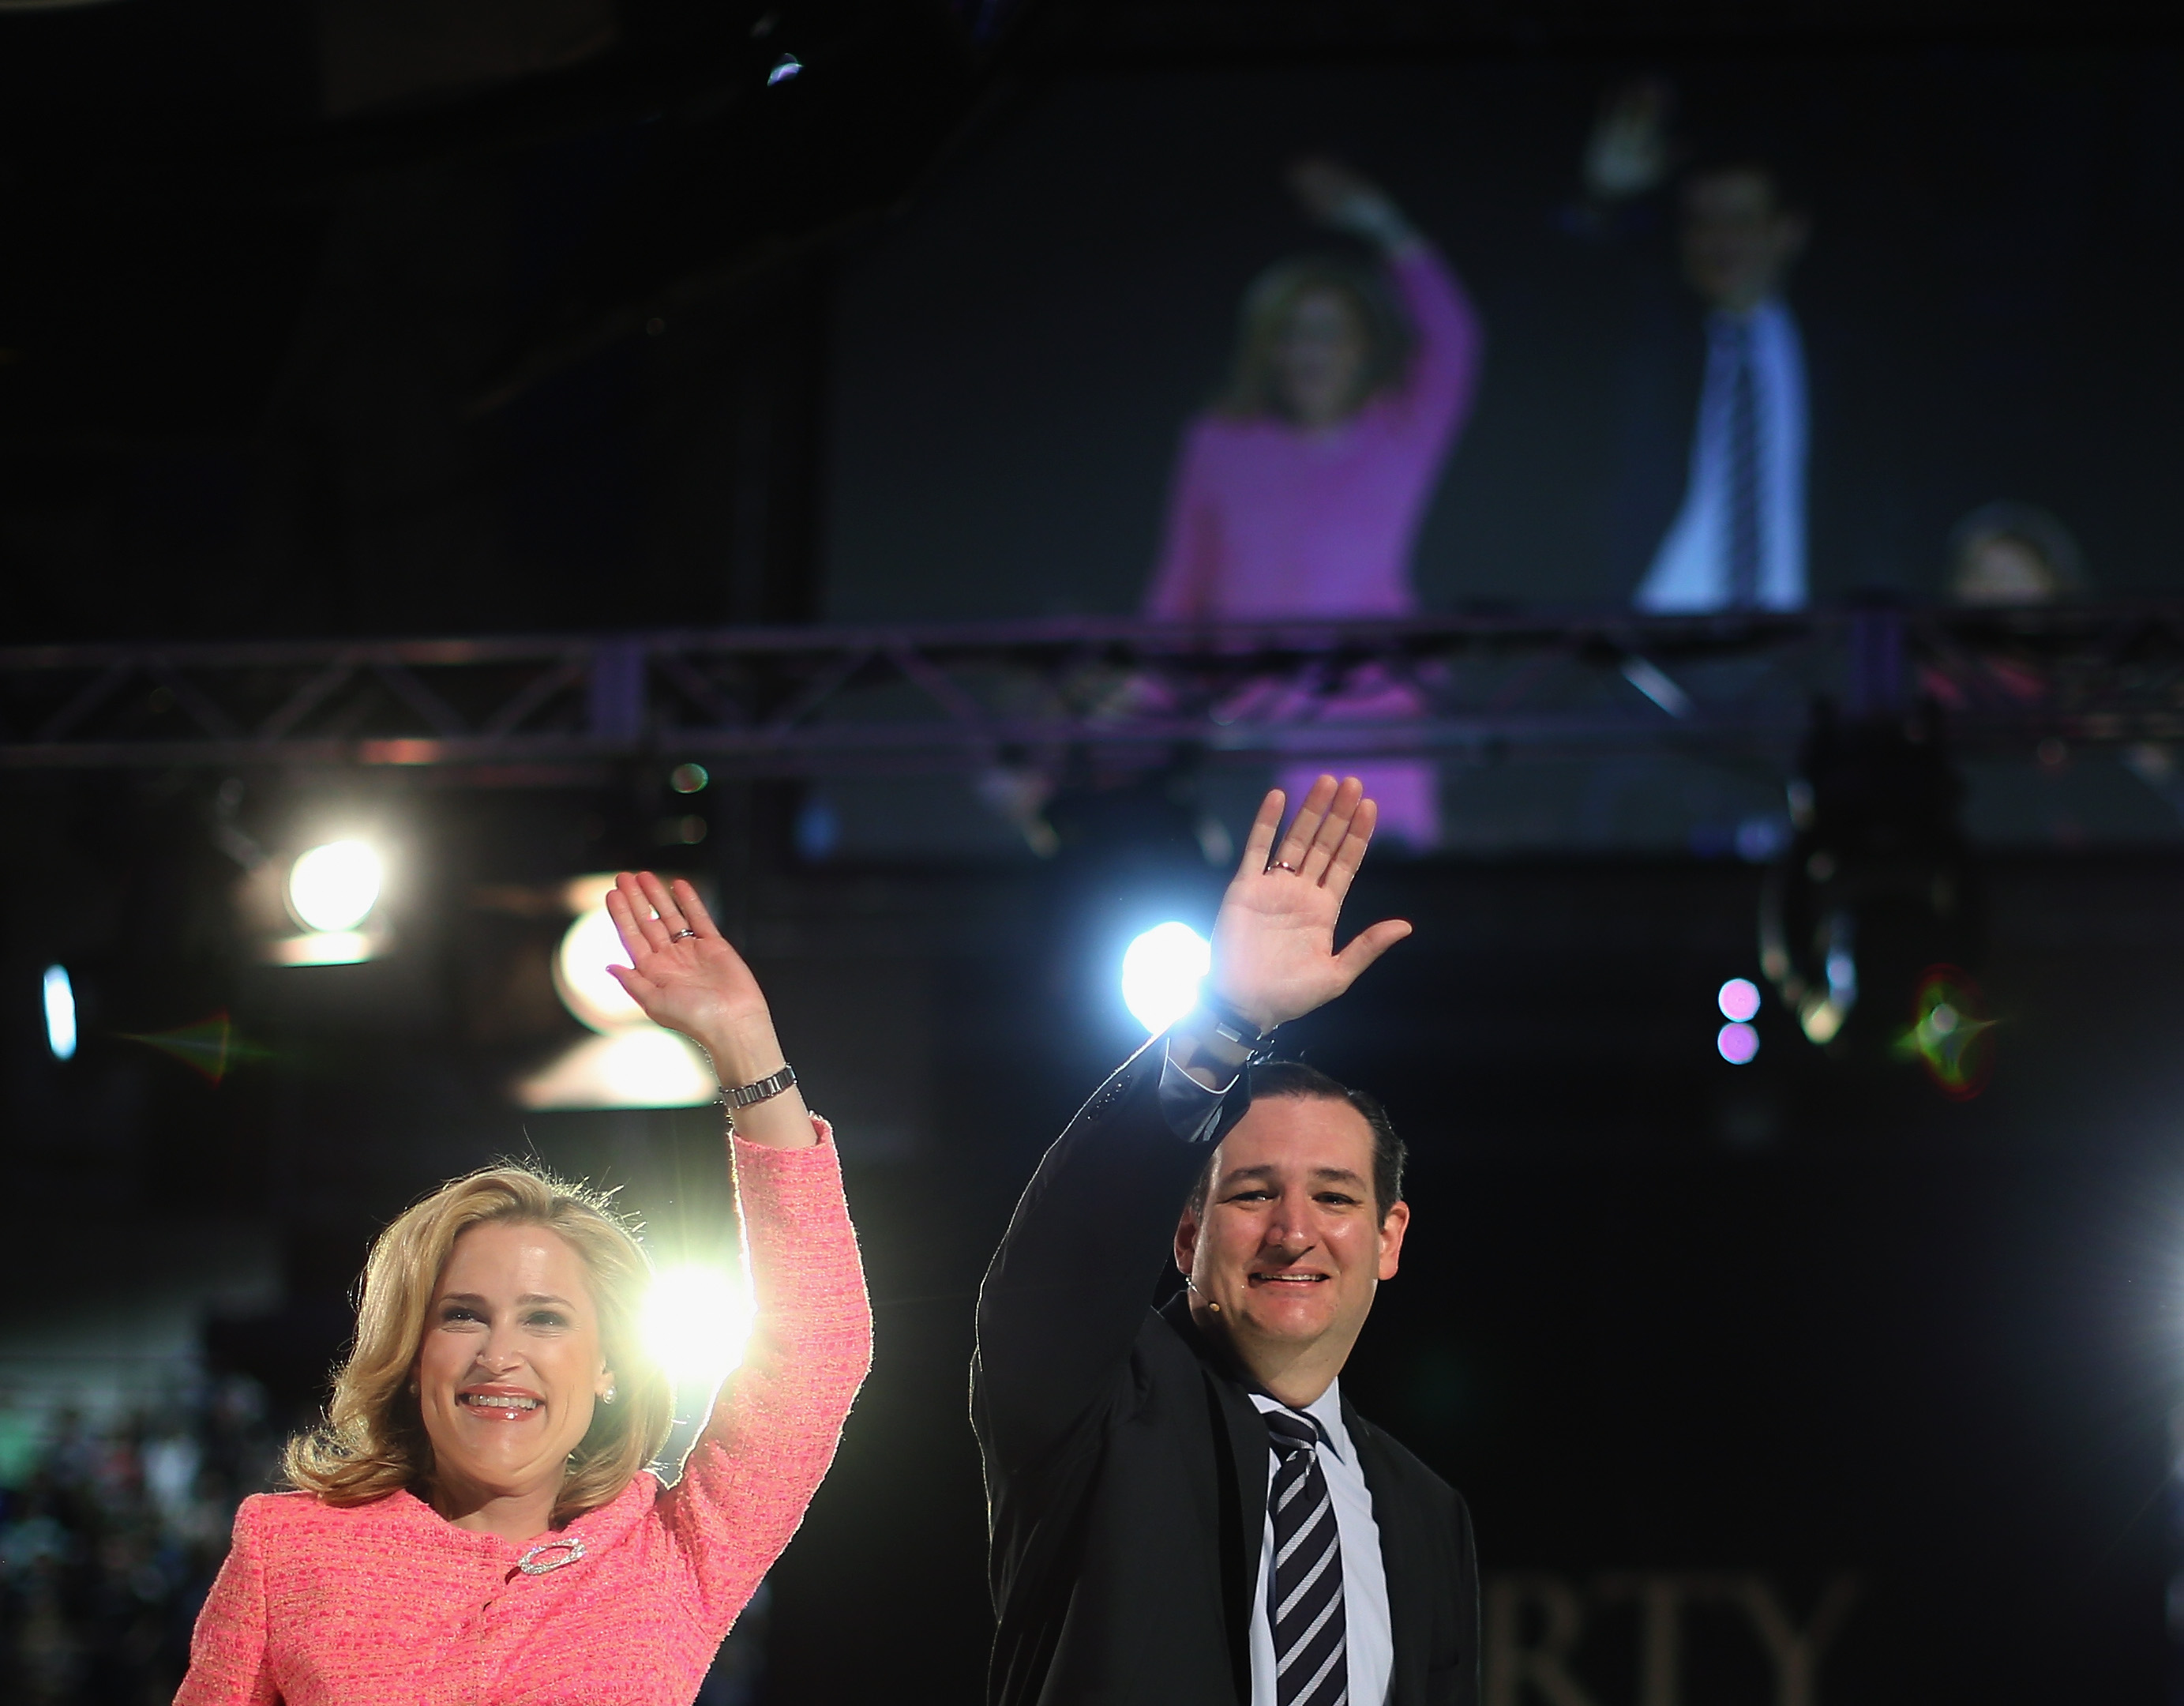 Sen. Ted Cruz (R-TX) (R) and his wife Heidi Cruz wave to the crowd at Liberty University. (Getty)